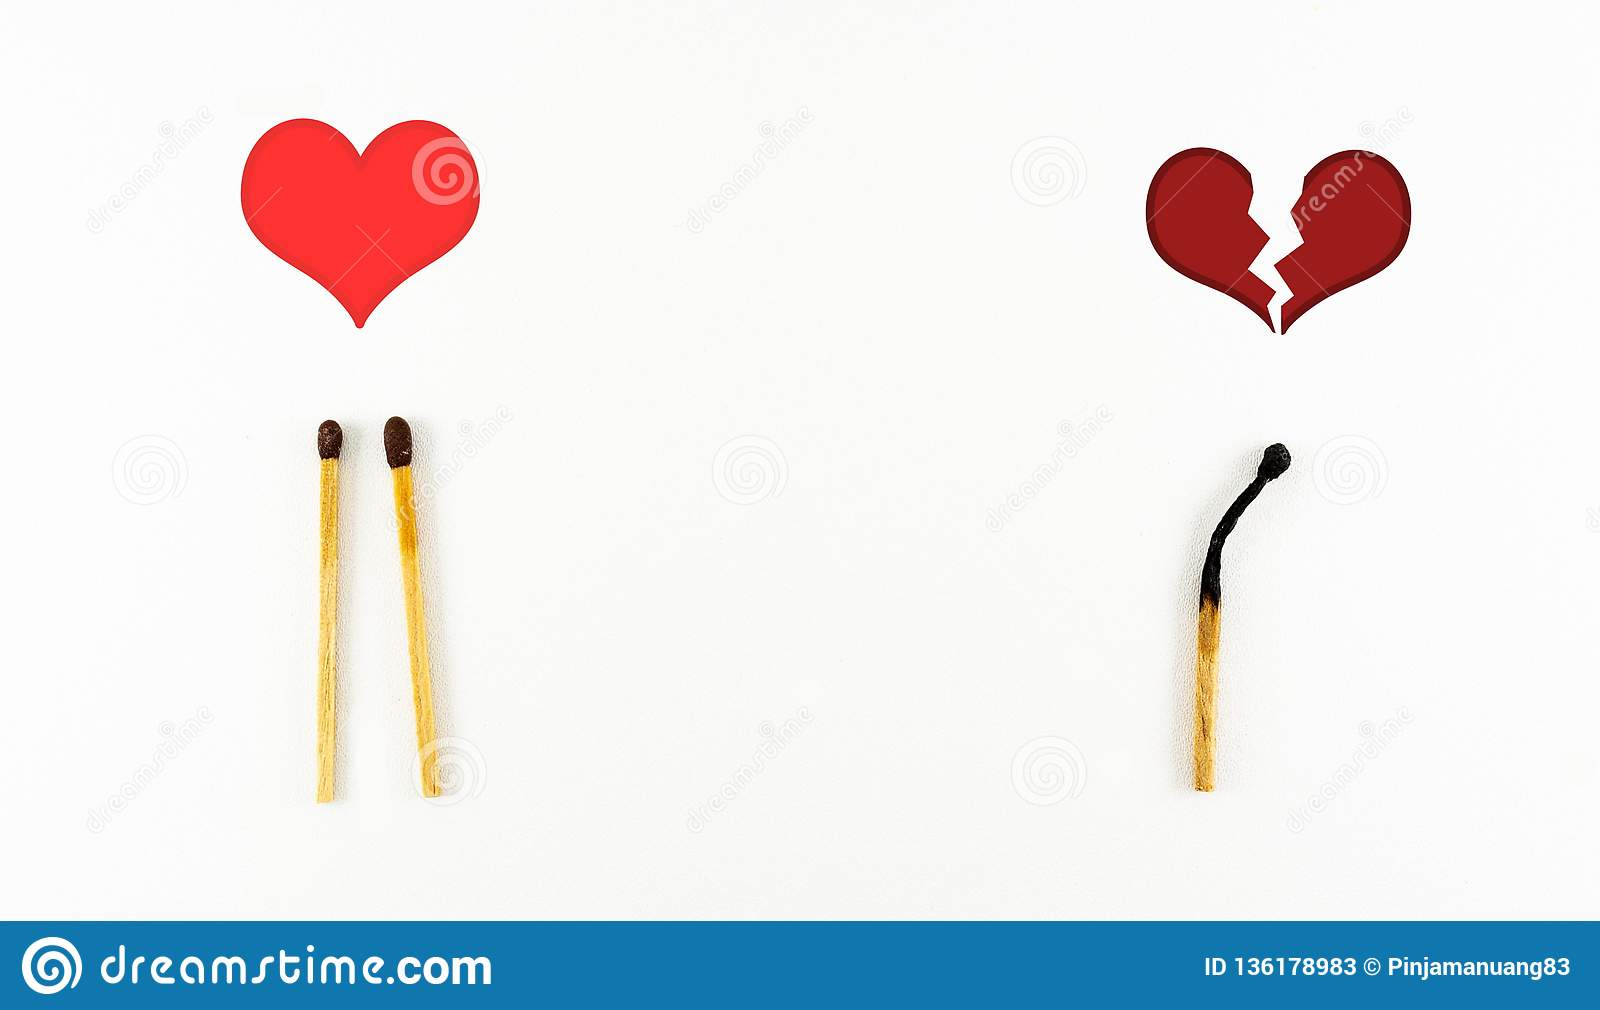 Broken heart stock image  Image of symbol, isolated - 136178983